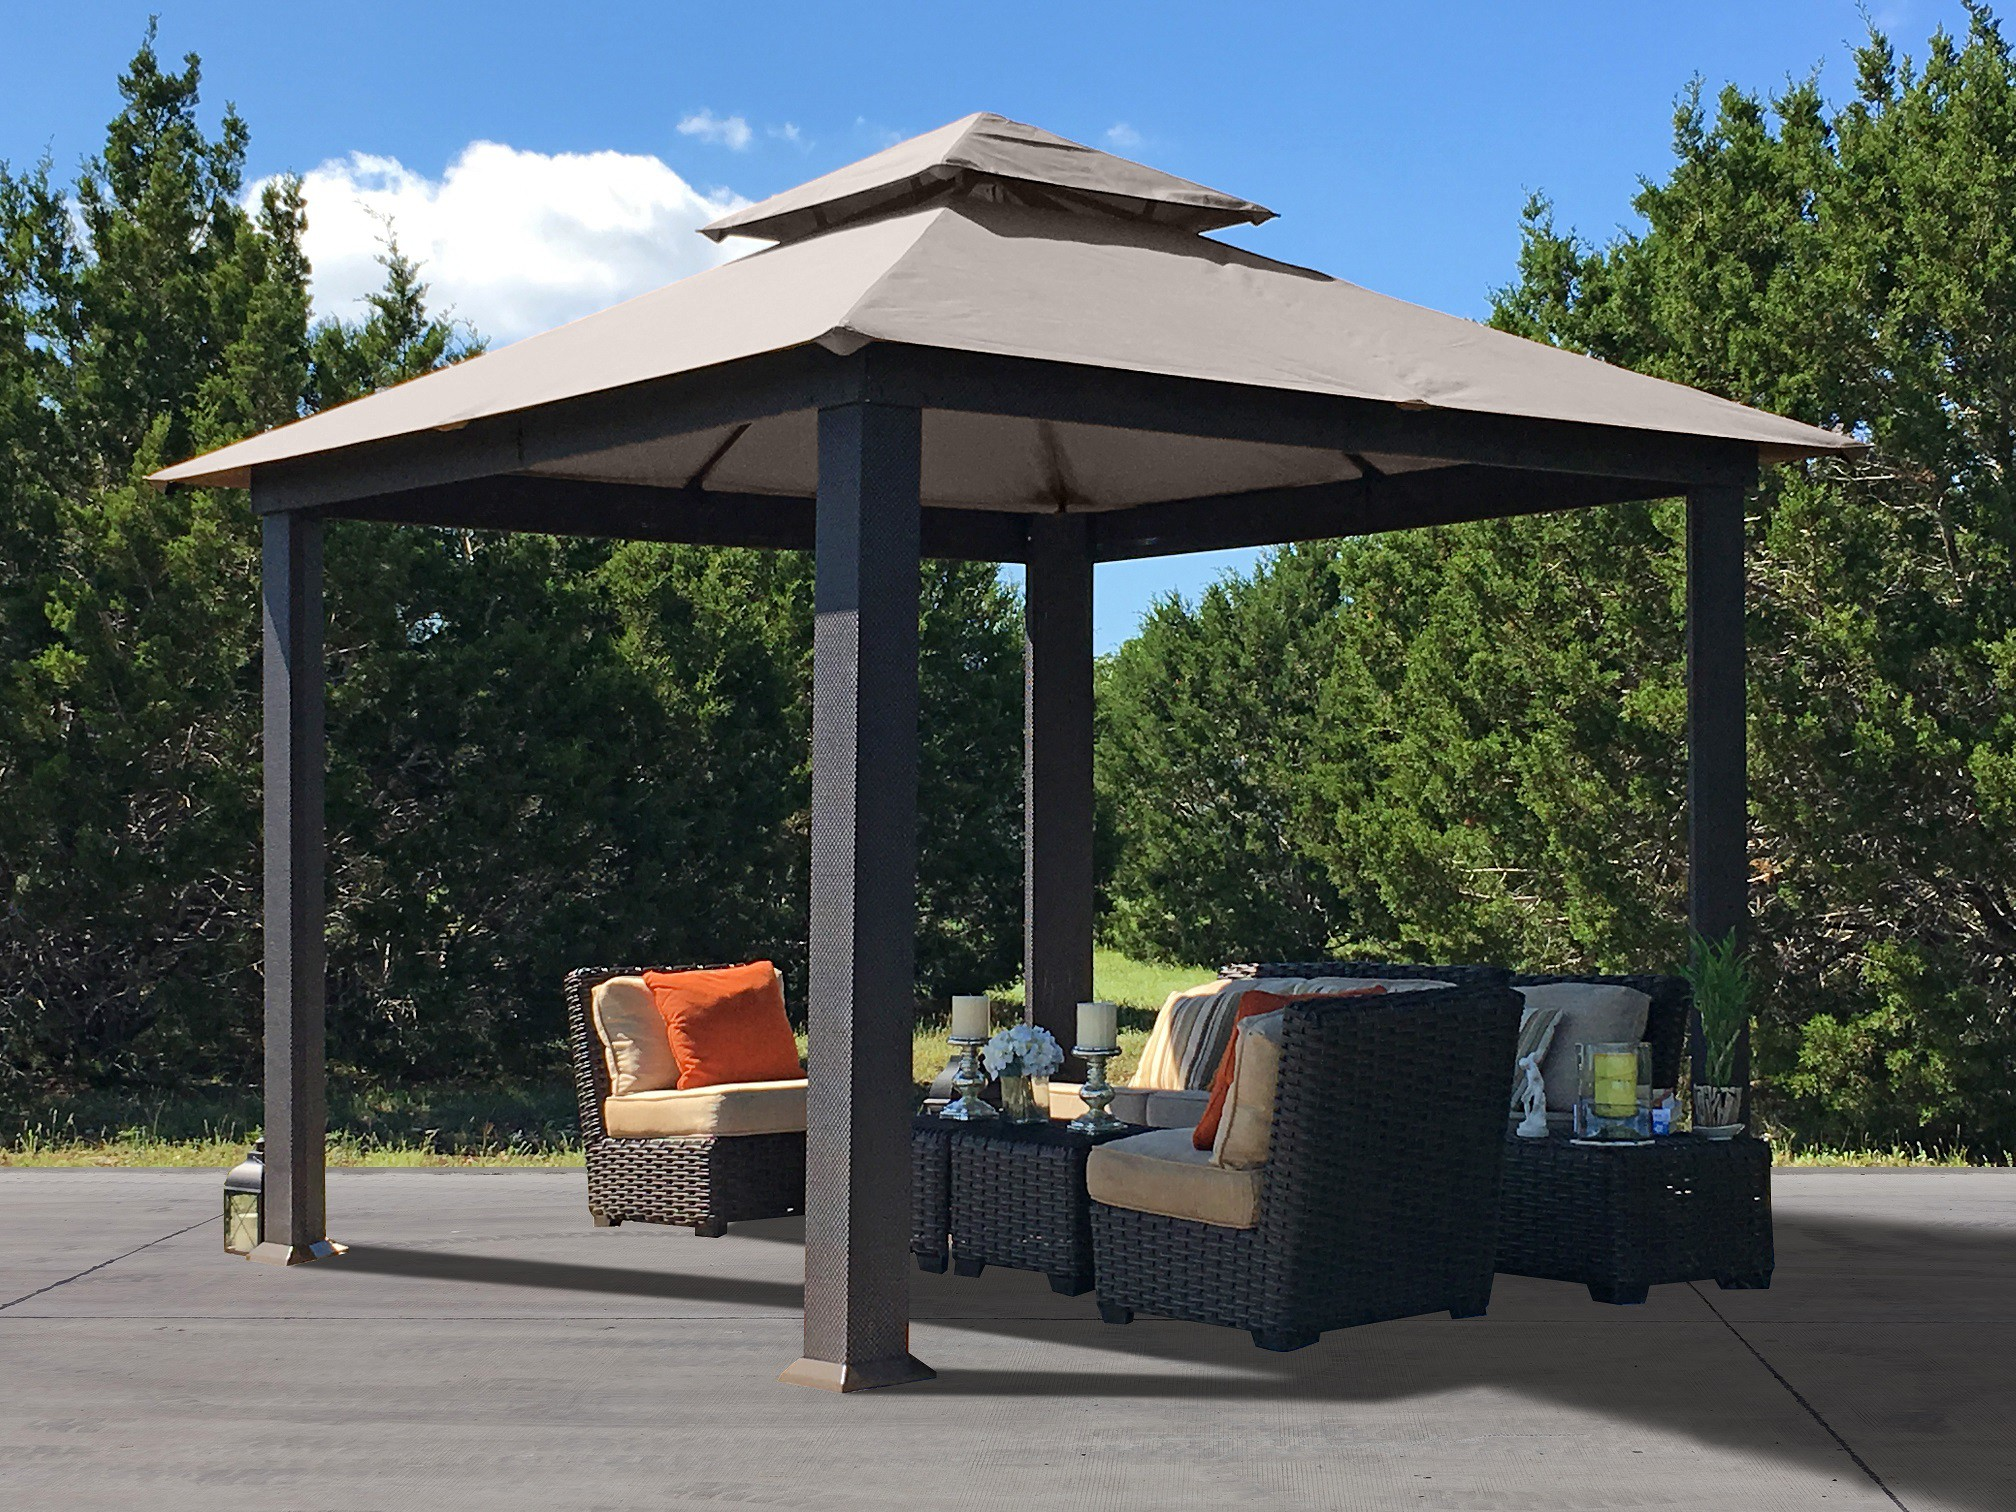 STC 10ft X 10ft Gazebo with Textiline Canopy & Outdoor Canopies - Pop Up Canopy Portable Shade Carports ...